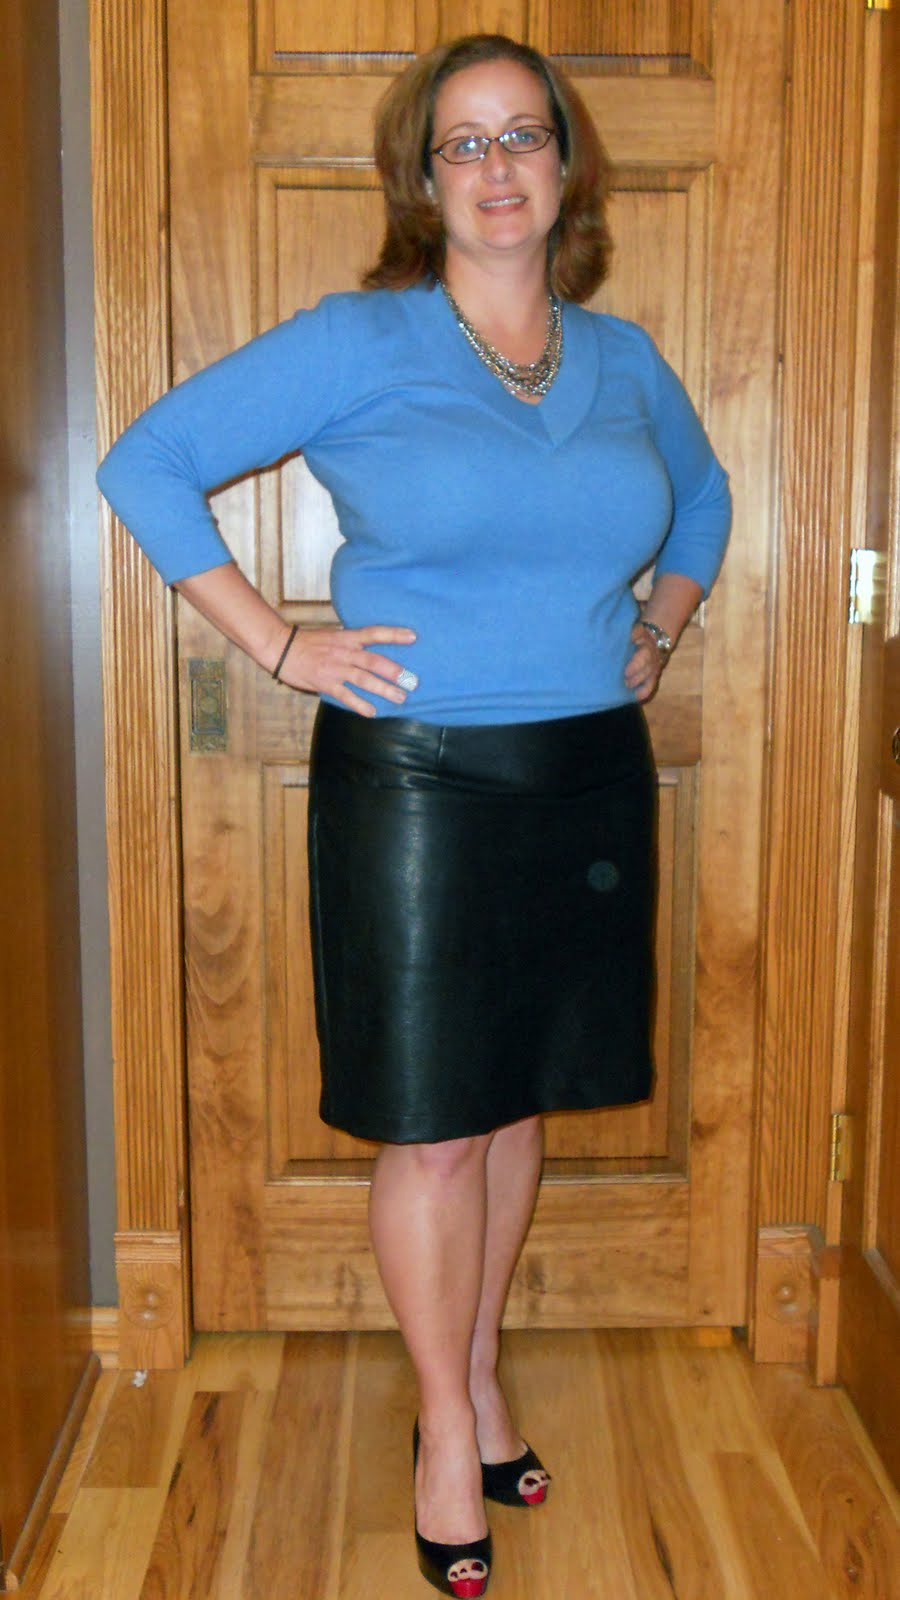 sew silly: vogue 1247 leather skirt done!!!